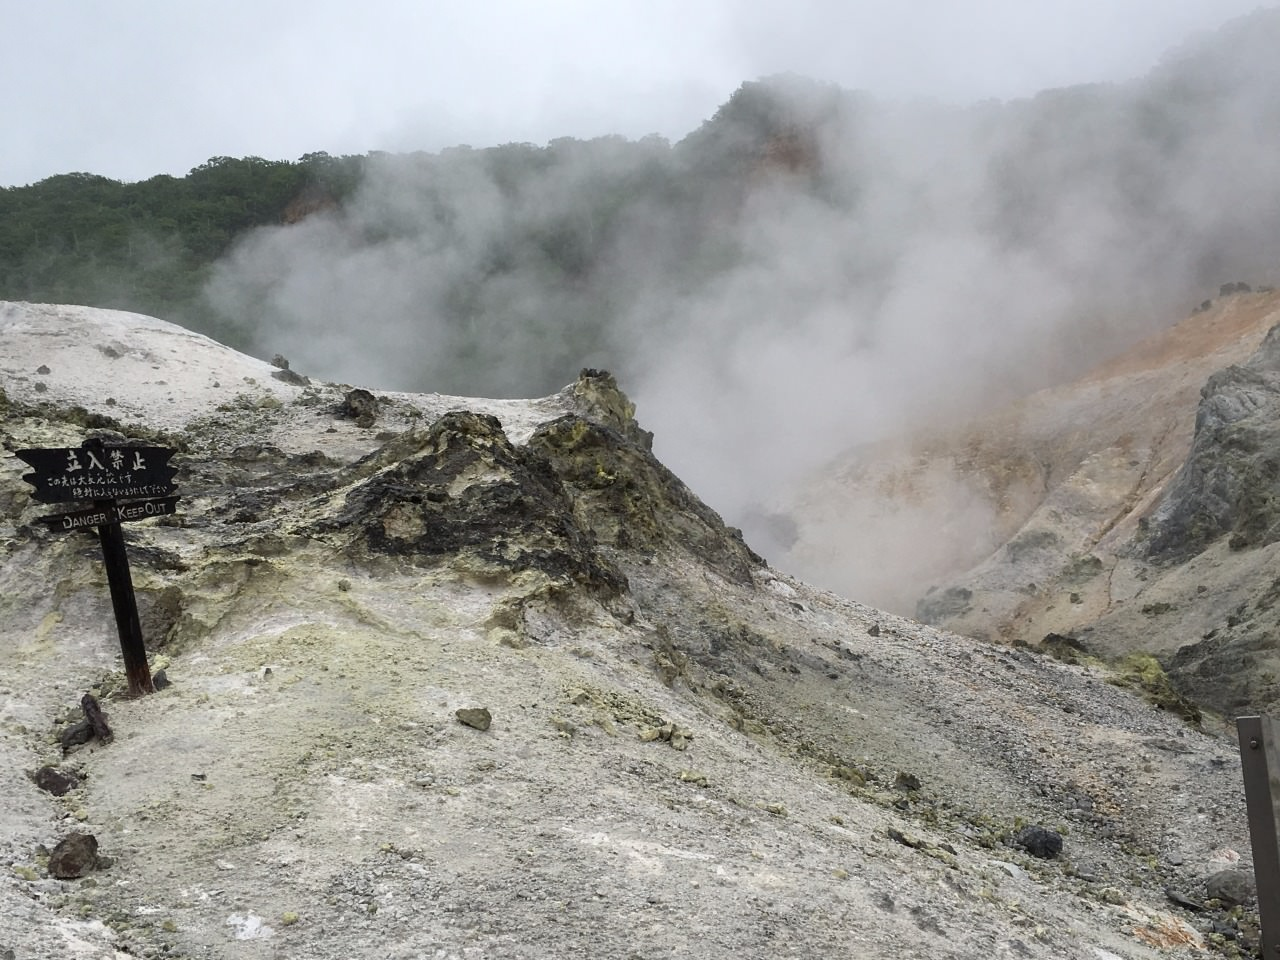 Hell Valley is dotted with hot steam vents spouting sulphur-containing steam.